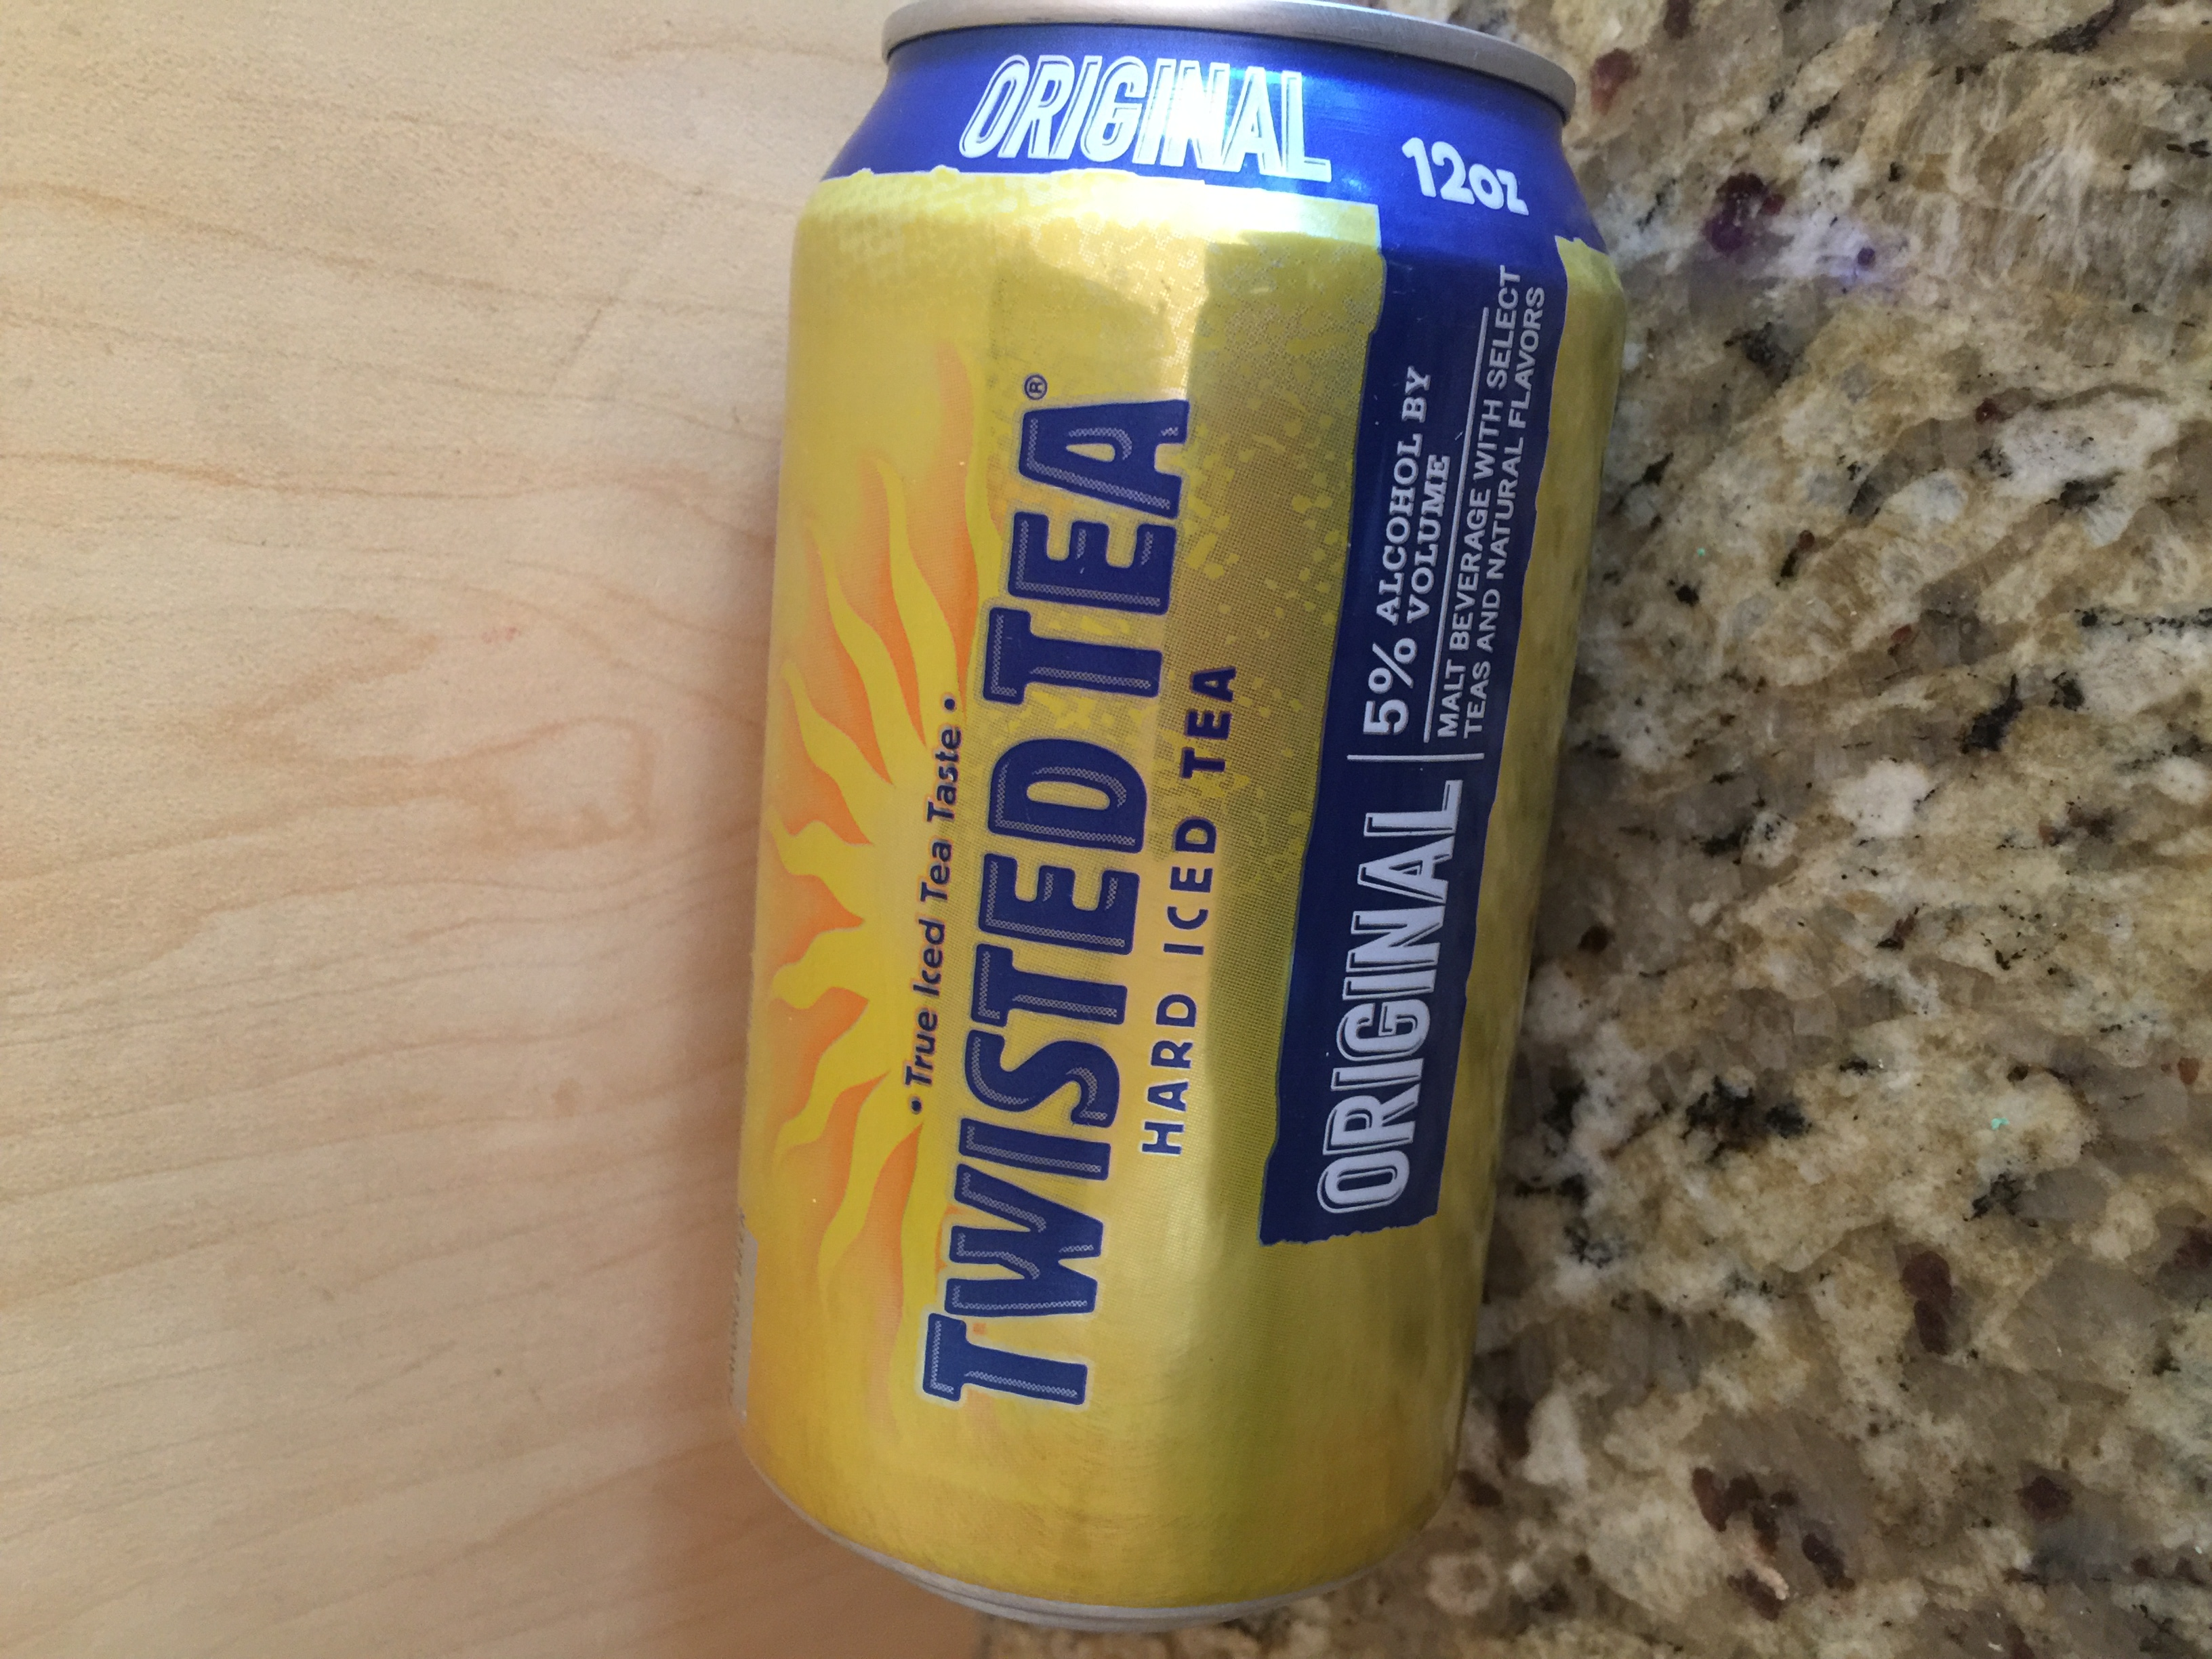 Kayla Ryder was suspended after taking a can of Twisted Tea to school in her lunch and sharing it with her schoolmates. She mistook the tea, which is 5 percent alcohol for a regular bottle of tea.